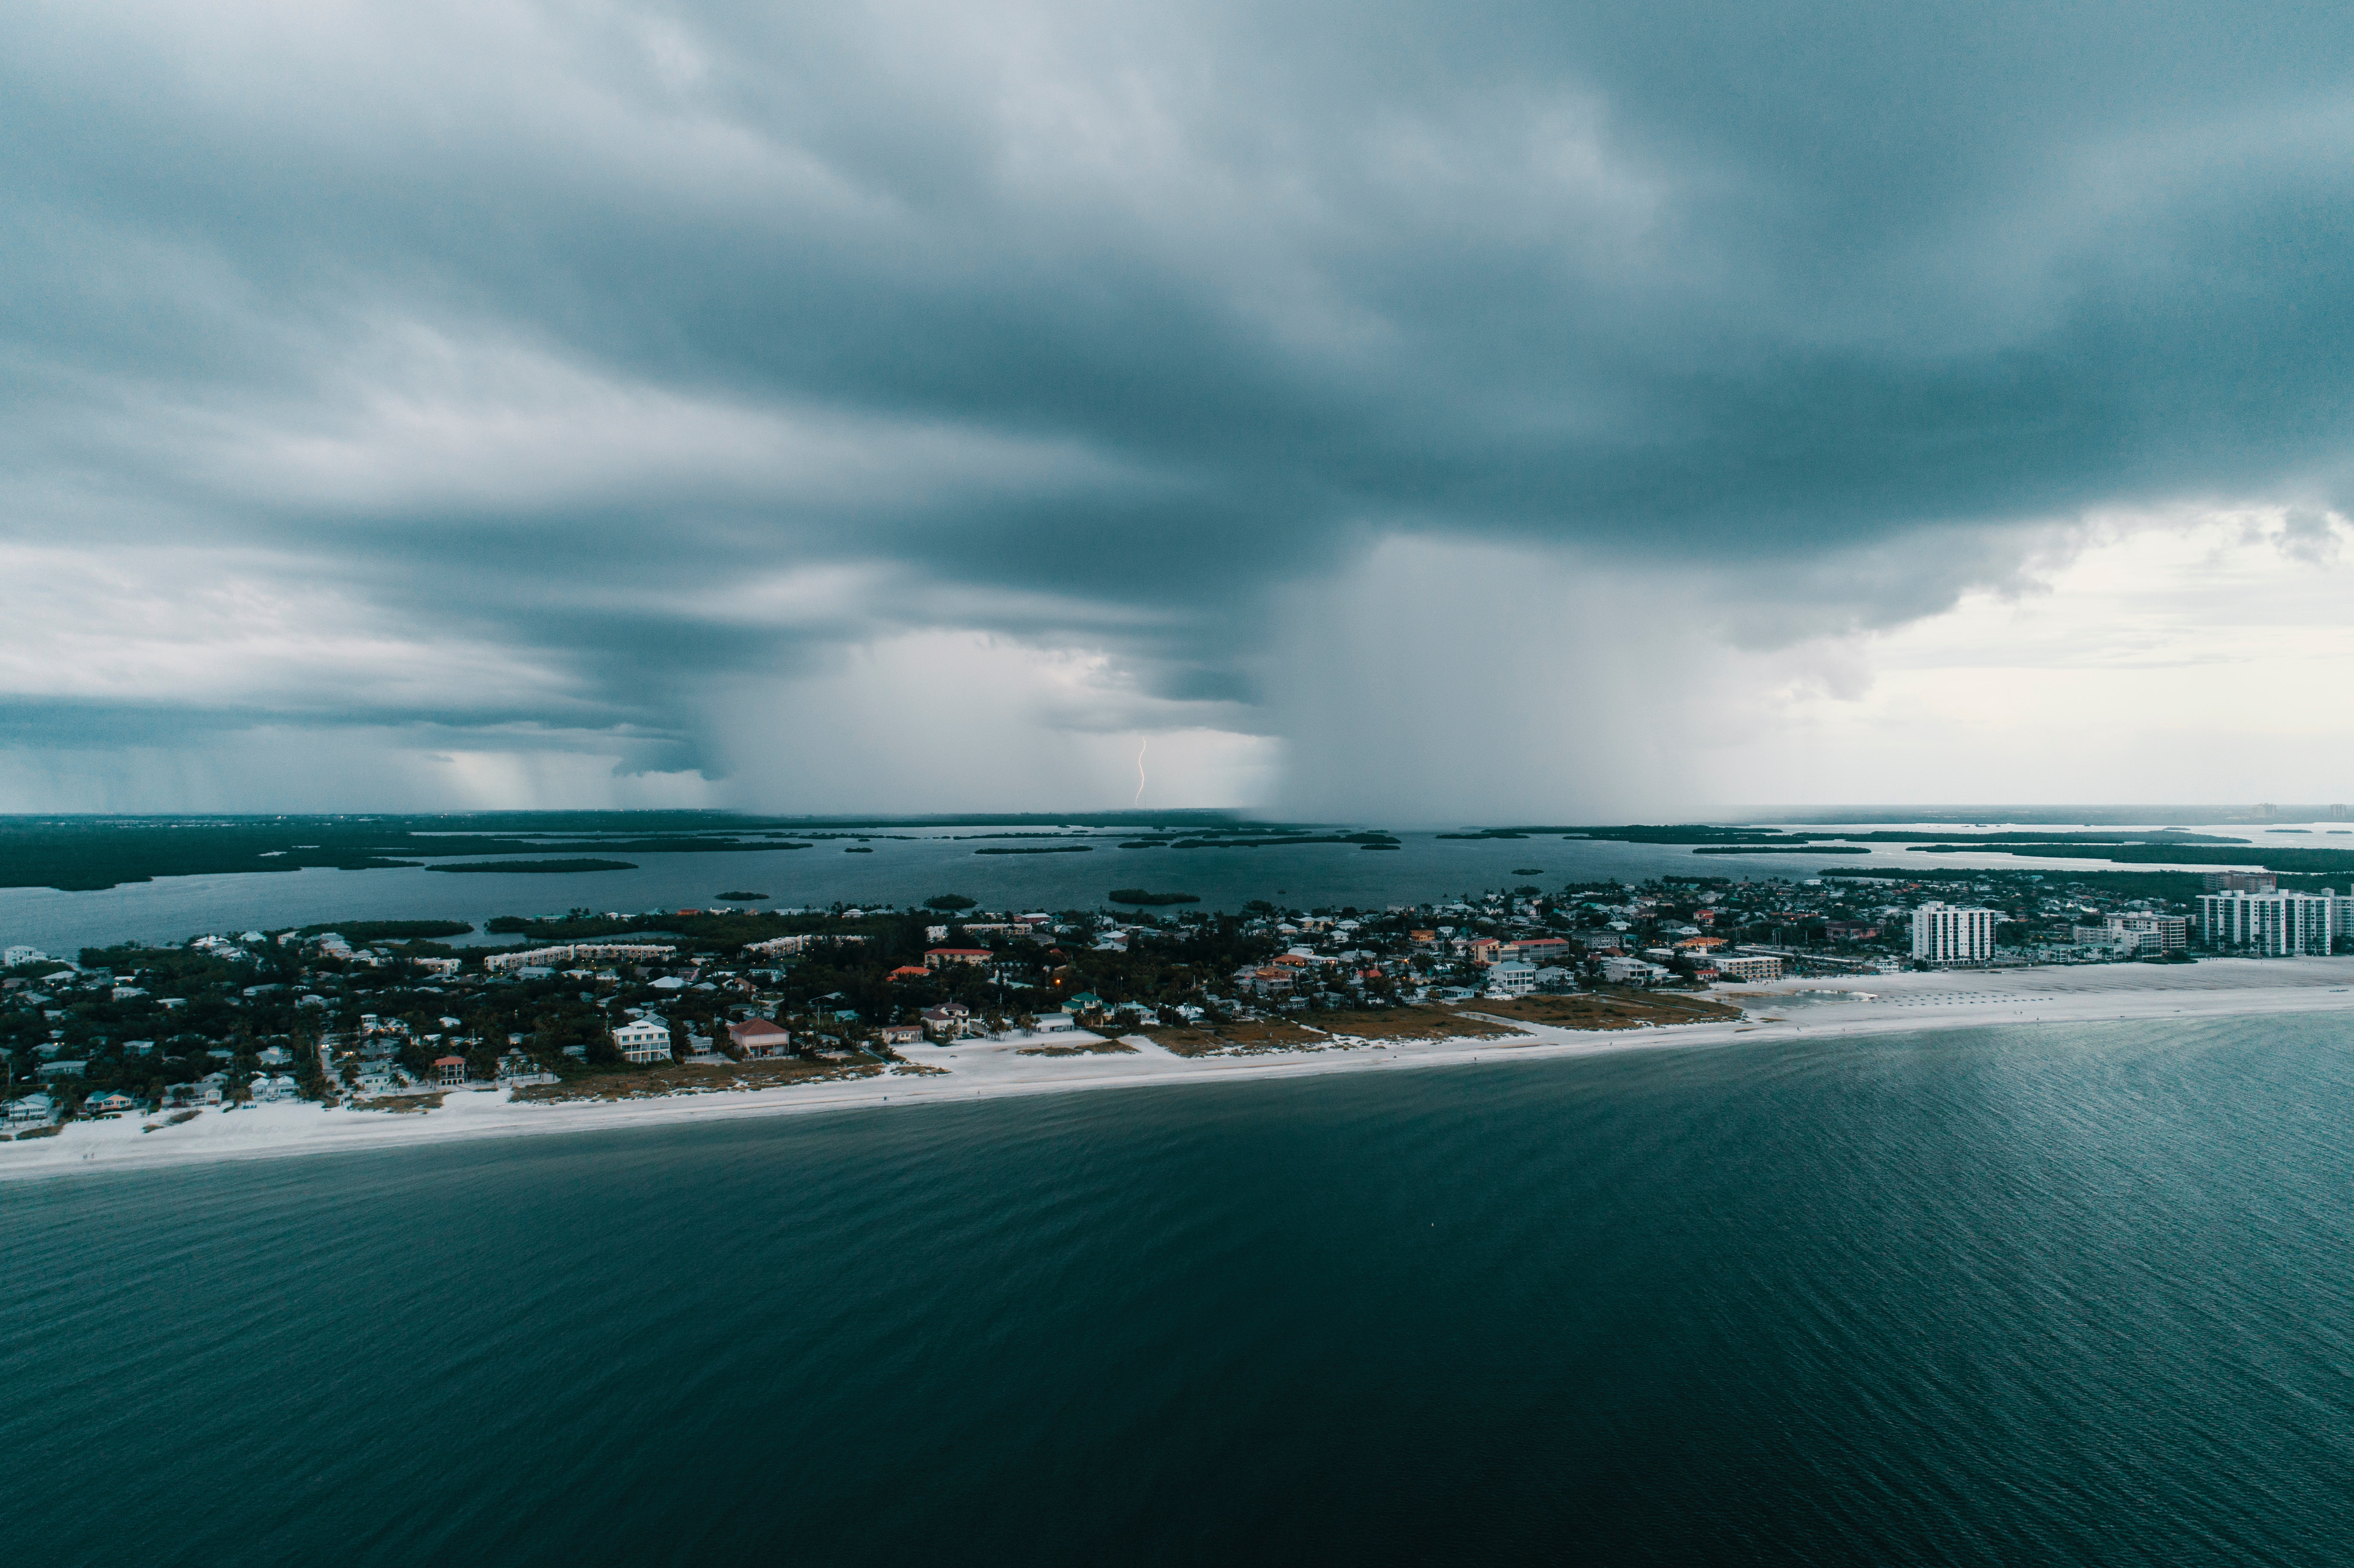 Aerial photography of city island under white clouds